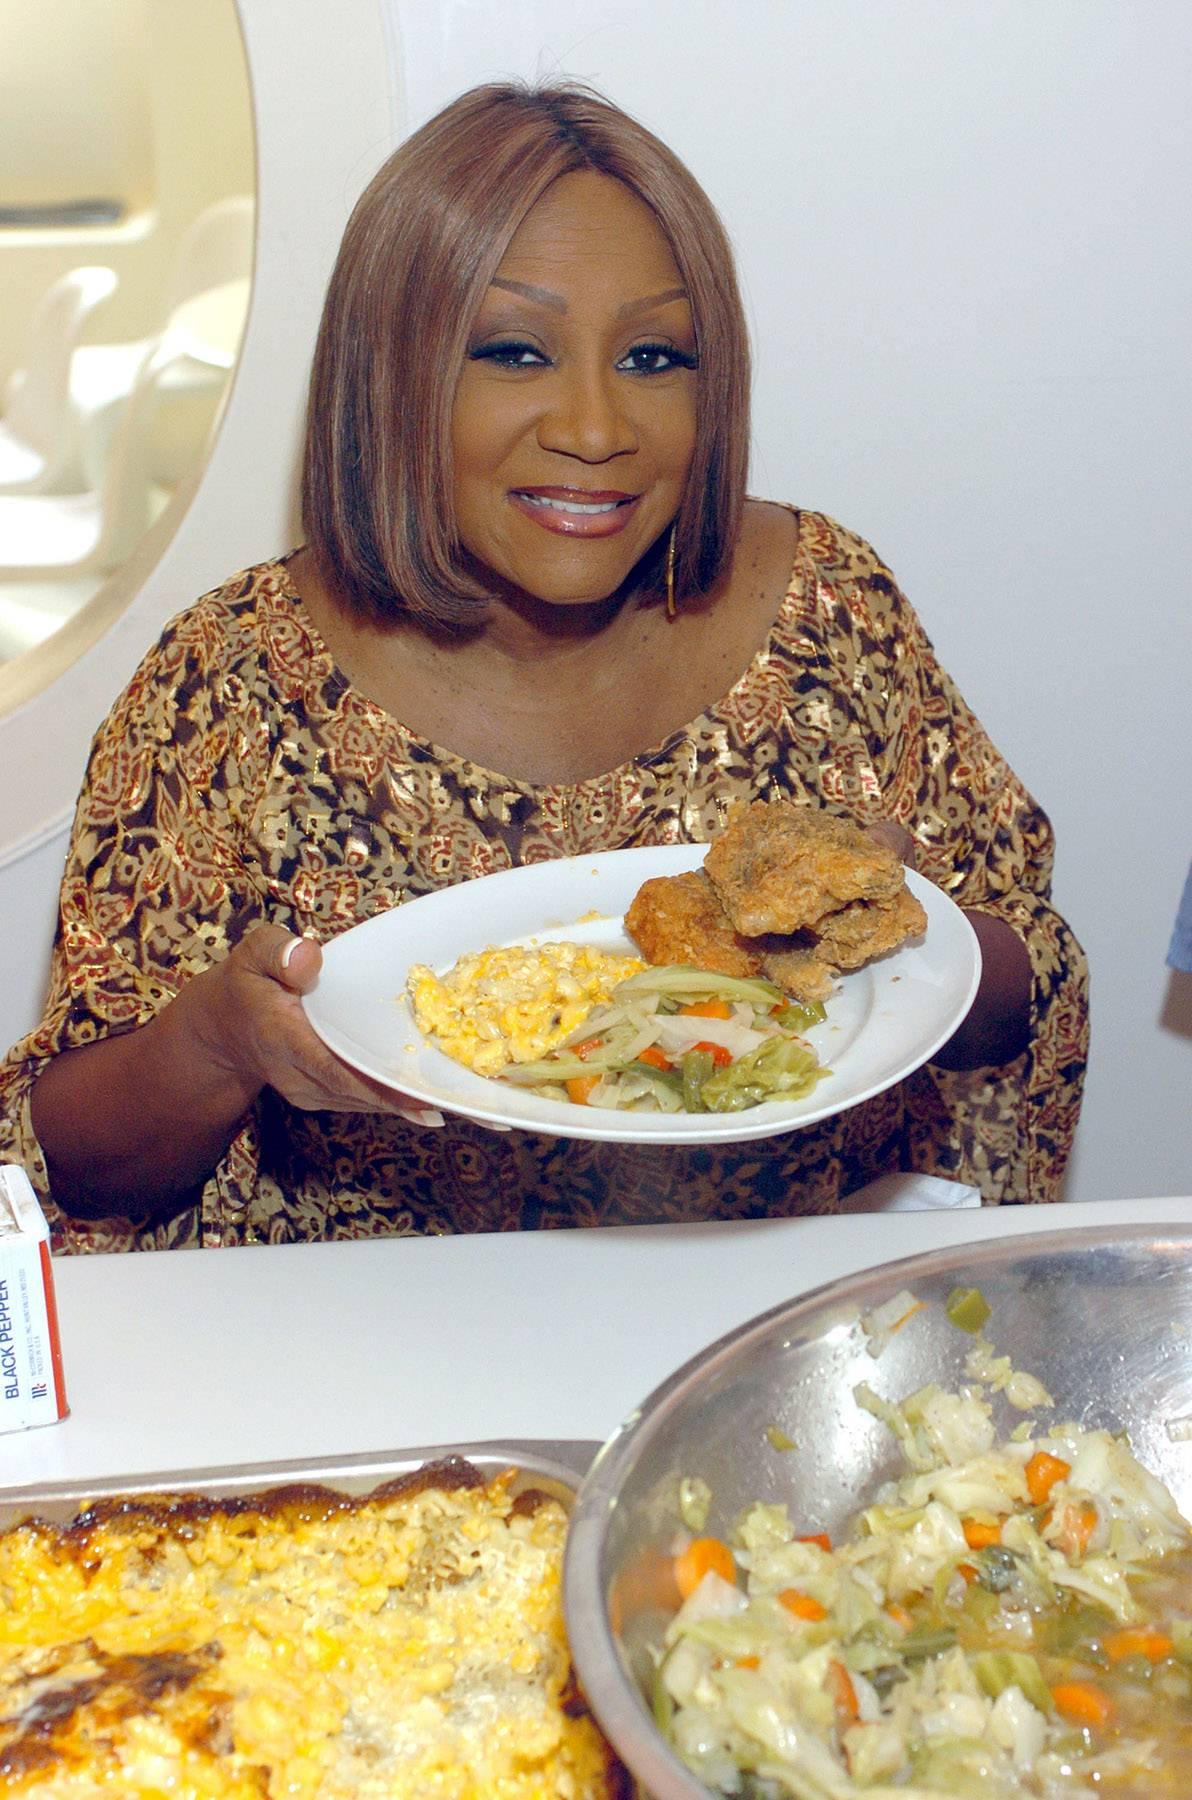 Food for the Soul  - Patti LaBelle and Laila Ali are just a couple of celebs that can showcase their skills in the kitchen. We hear Quest Love is waiting for Patti to serve him up some good ol' soul food cooking! (Photo: Brian Killian/WireImage for The Recording Academy)